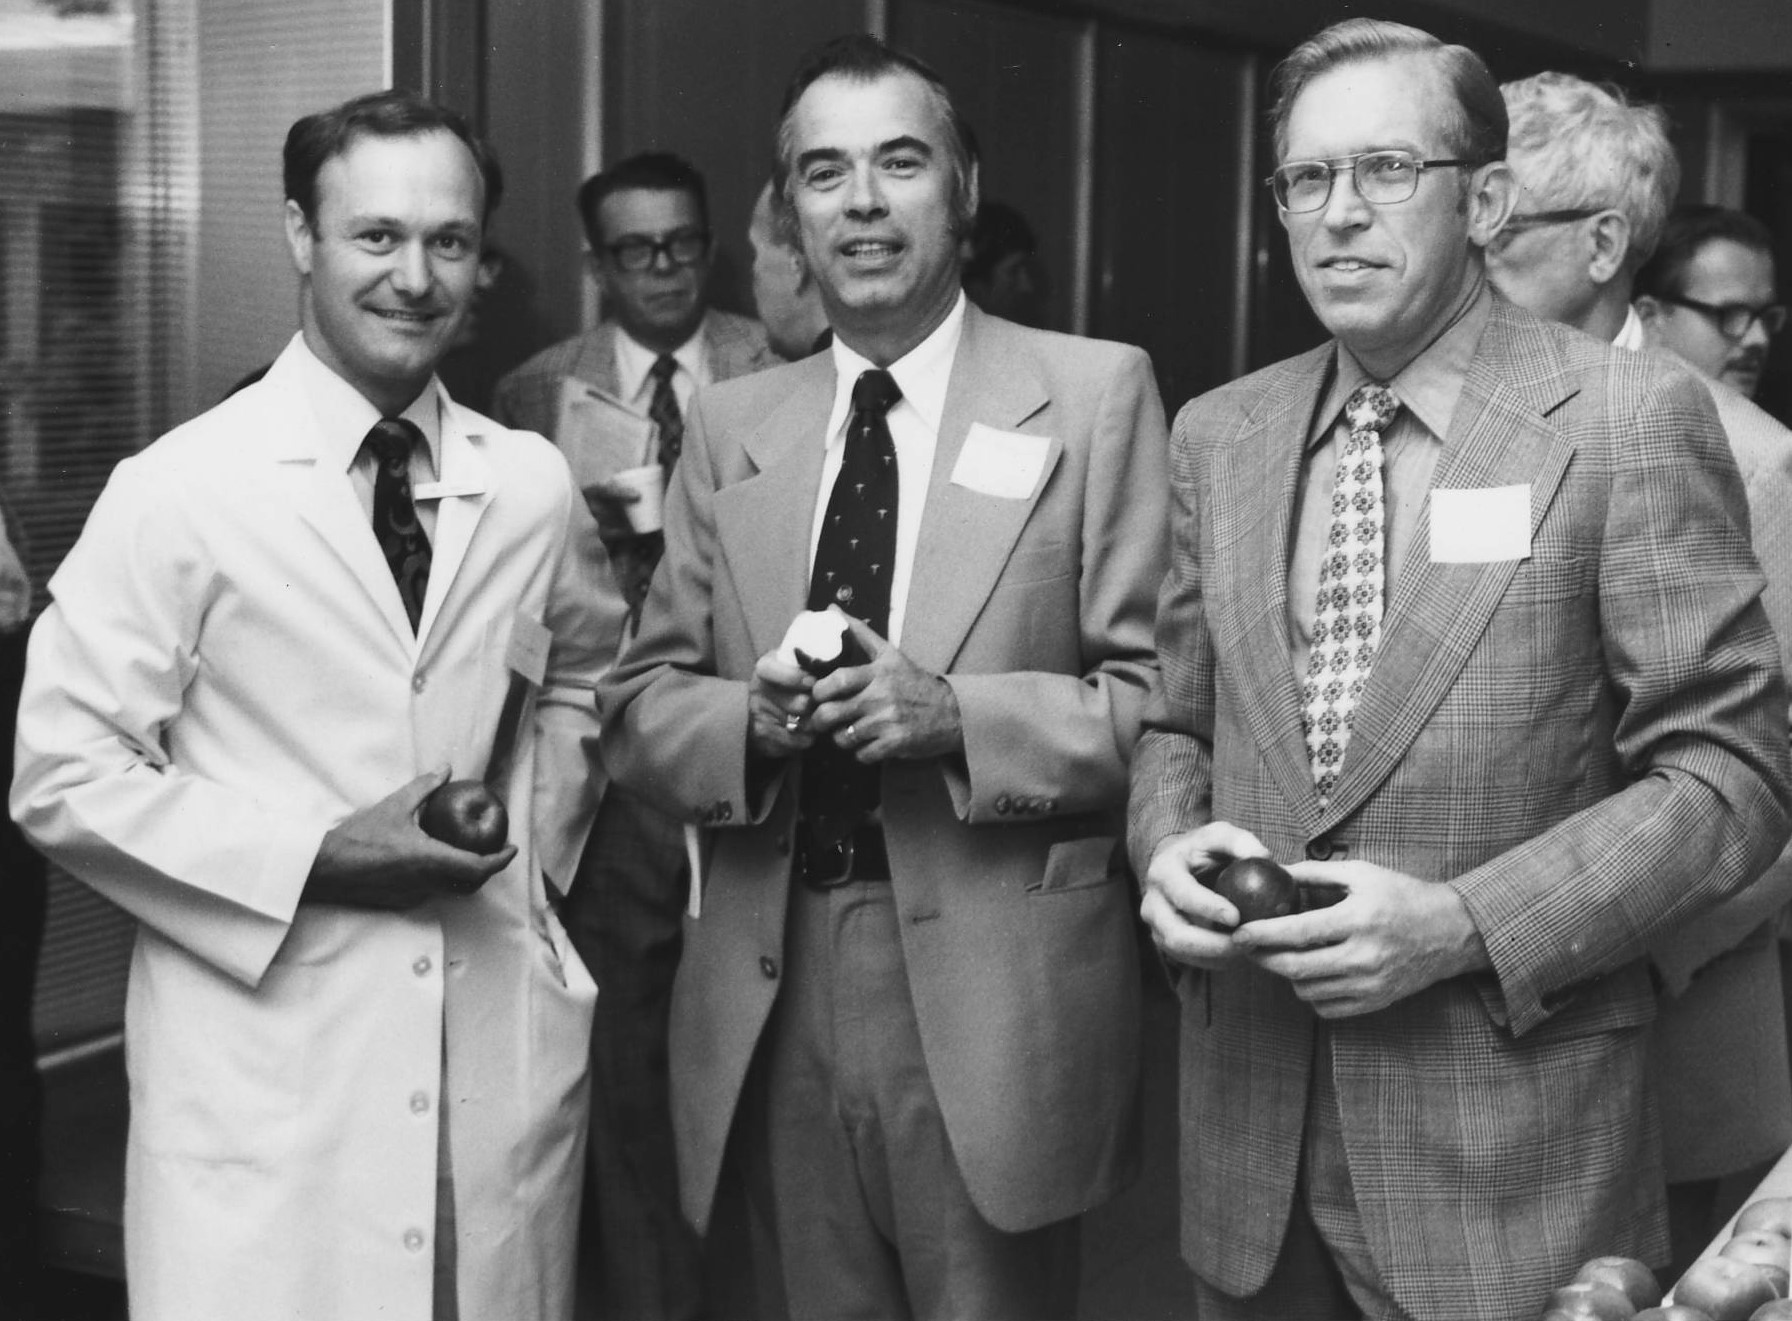 Dr. John Traubert (Center), enjoying his Hal Wanger apple with Dr. David Hunter (left) and Dr. William Wanger (Right) at the 2nd Annual Hal Wanger Family Medicine Conference